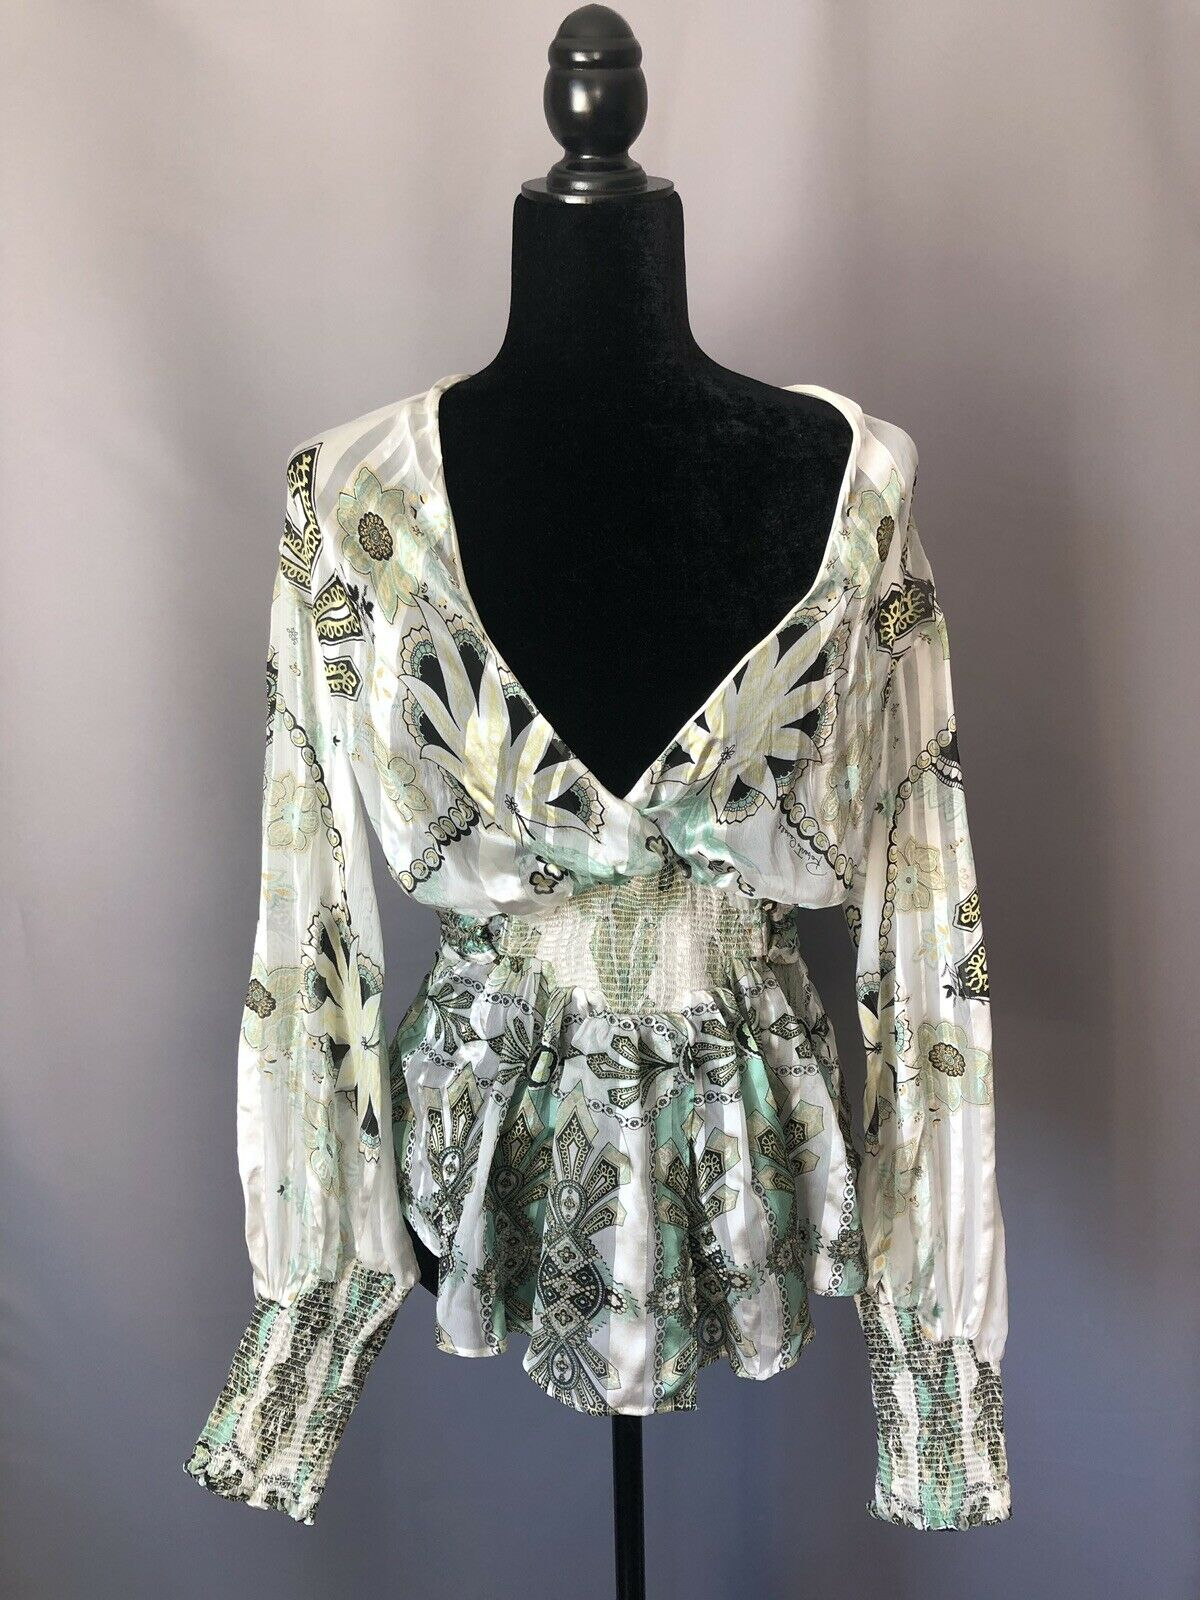 Romantic Roberto Cavalli Silk Floral Print Blouse. Größe S-M. IT 40